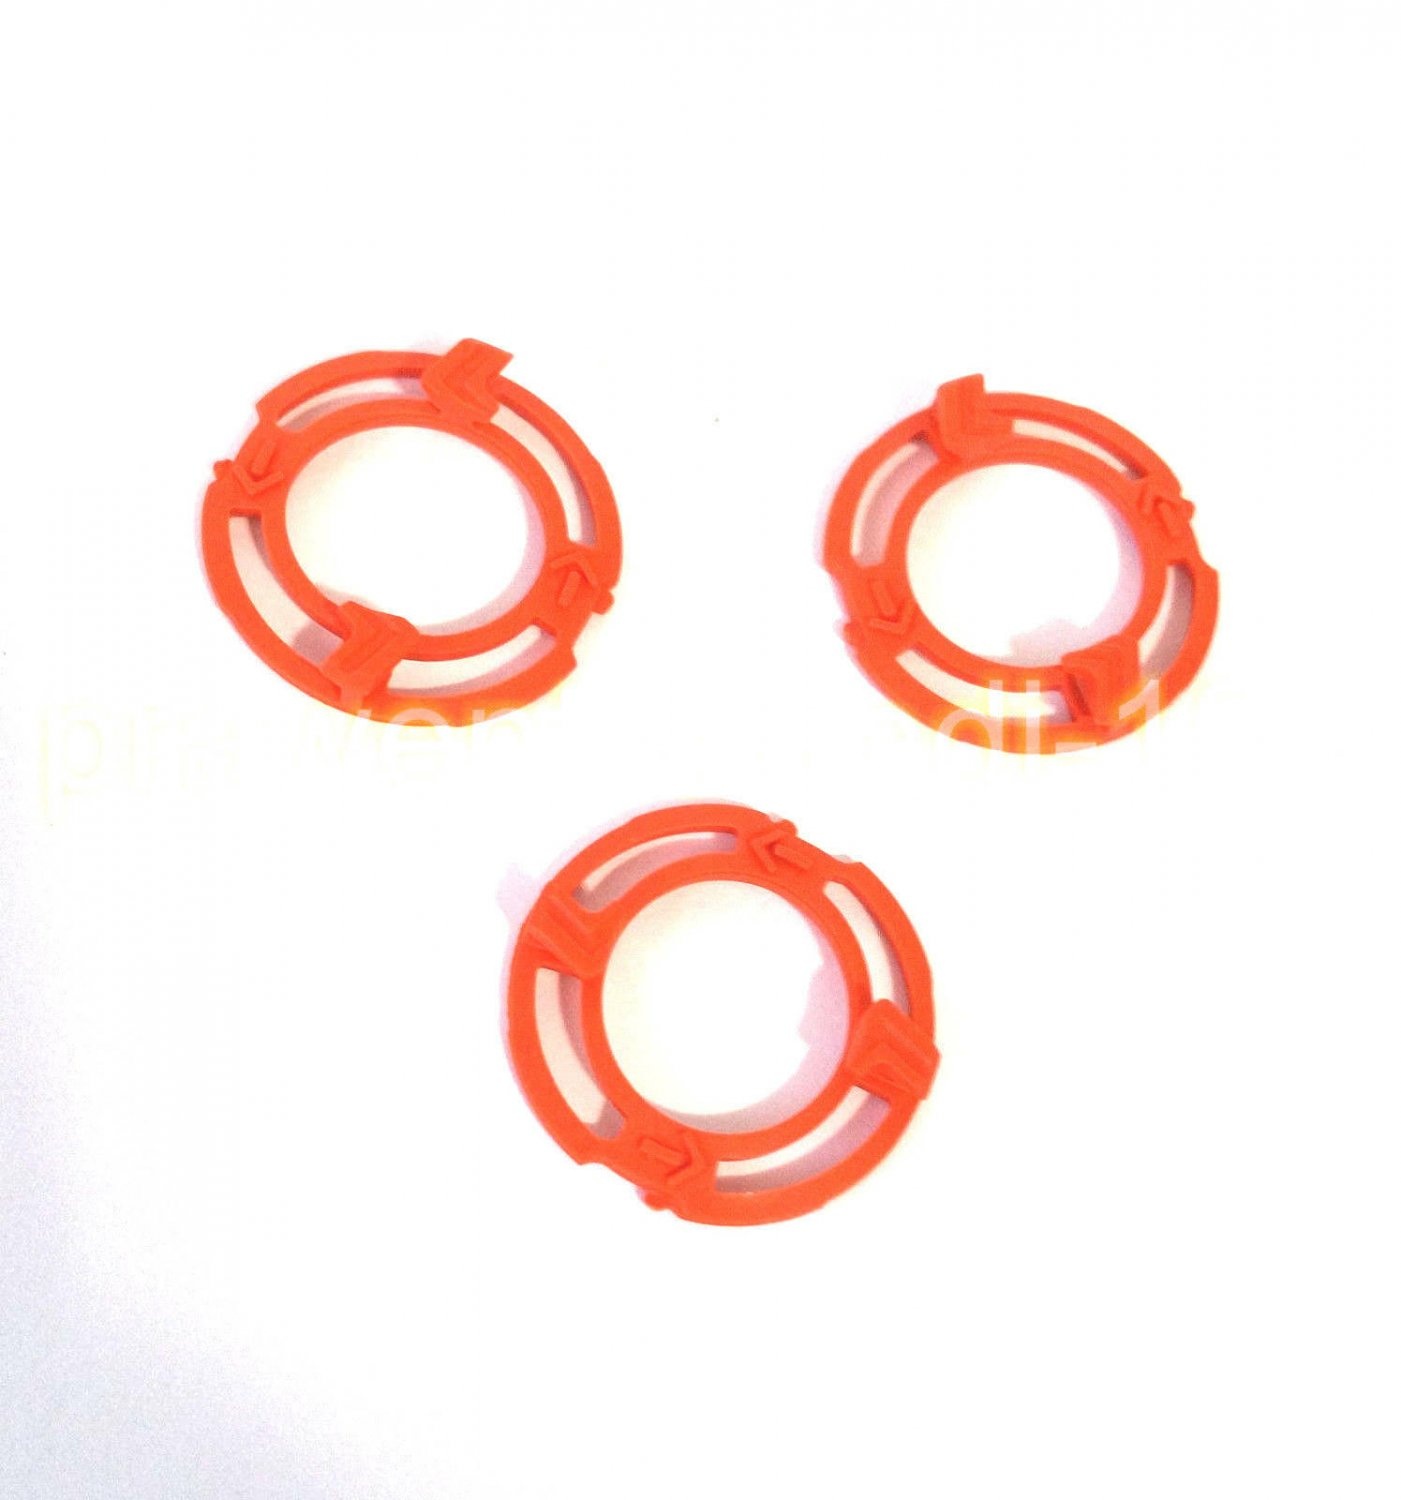 RQ Shaver Head Blade Orange Ring For SH70 SH90 RQ12 Plus+ S7370 S9311 S7000 S900